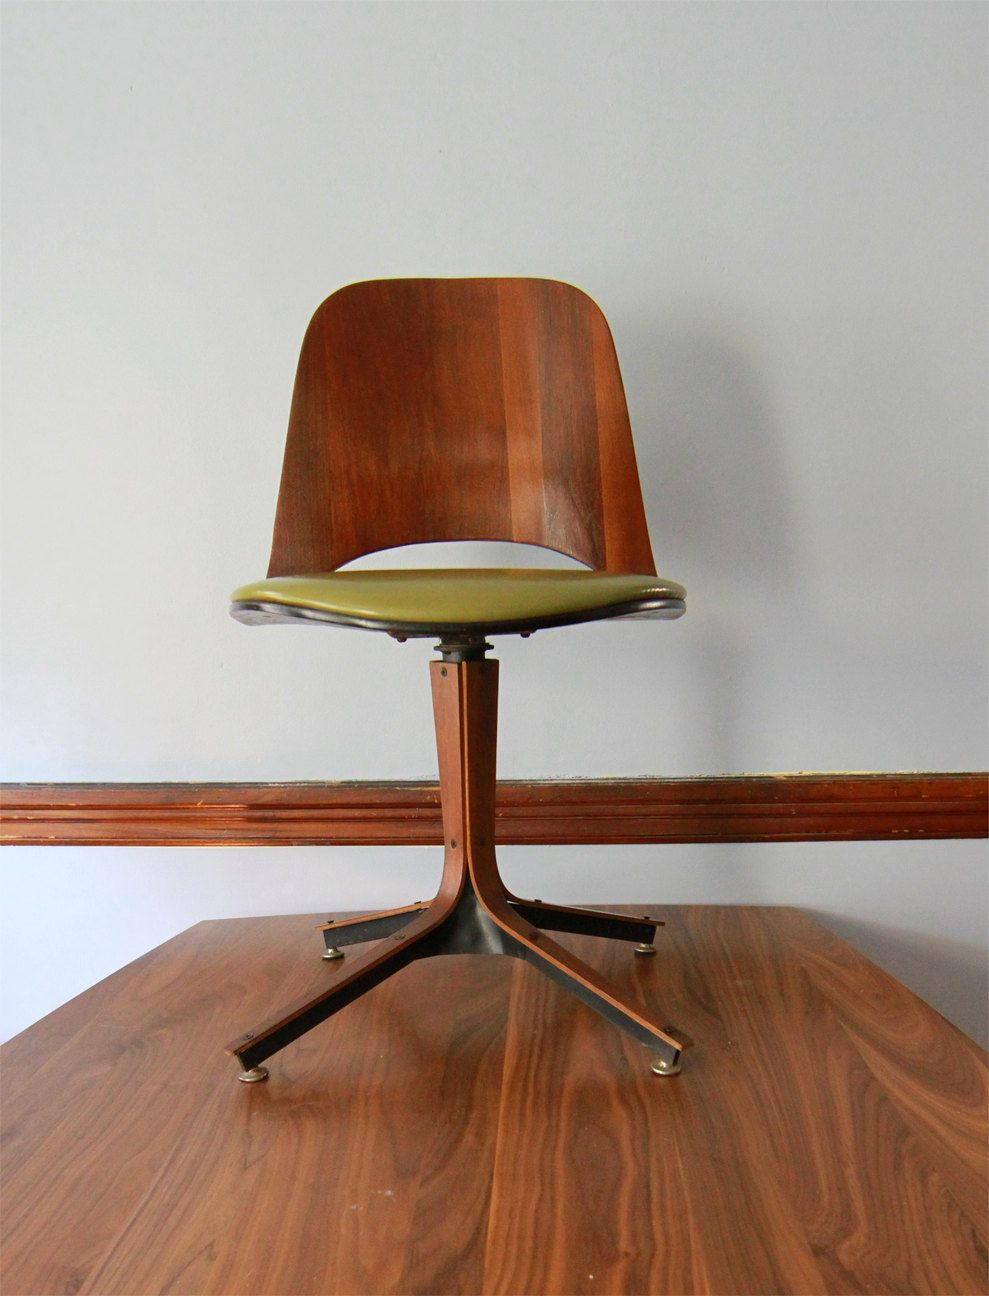 Plycraft Swivel Desk Chair Mid Century Modern Modern Desk Chair Mid Century Modern Desk Chair Mid Century Desk Chair